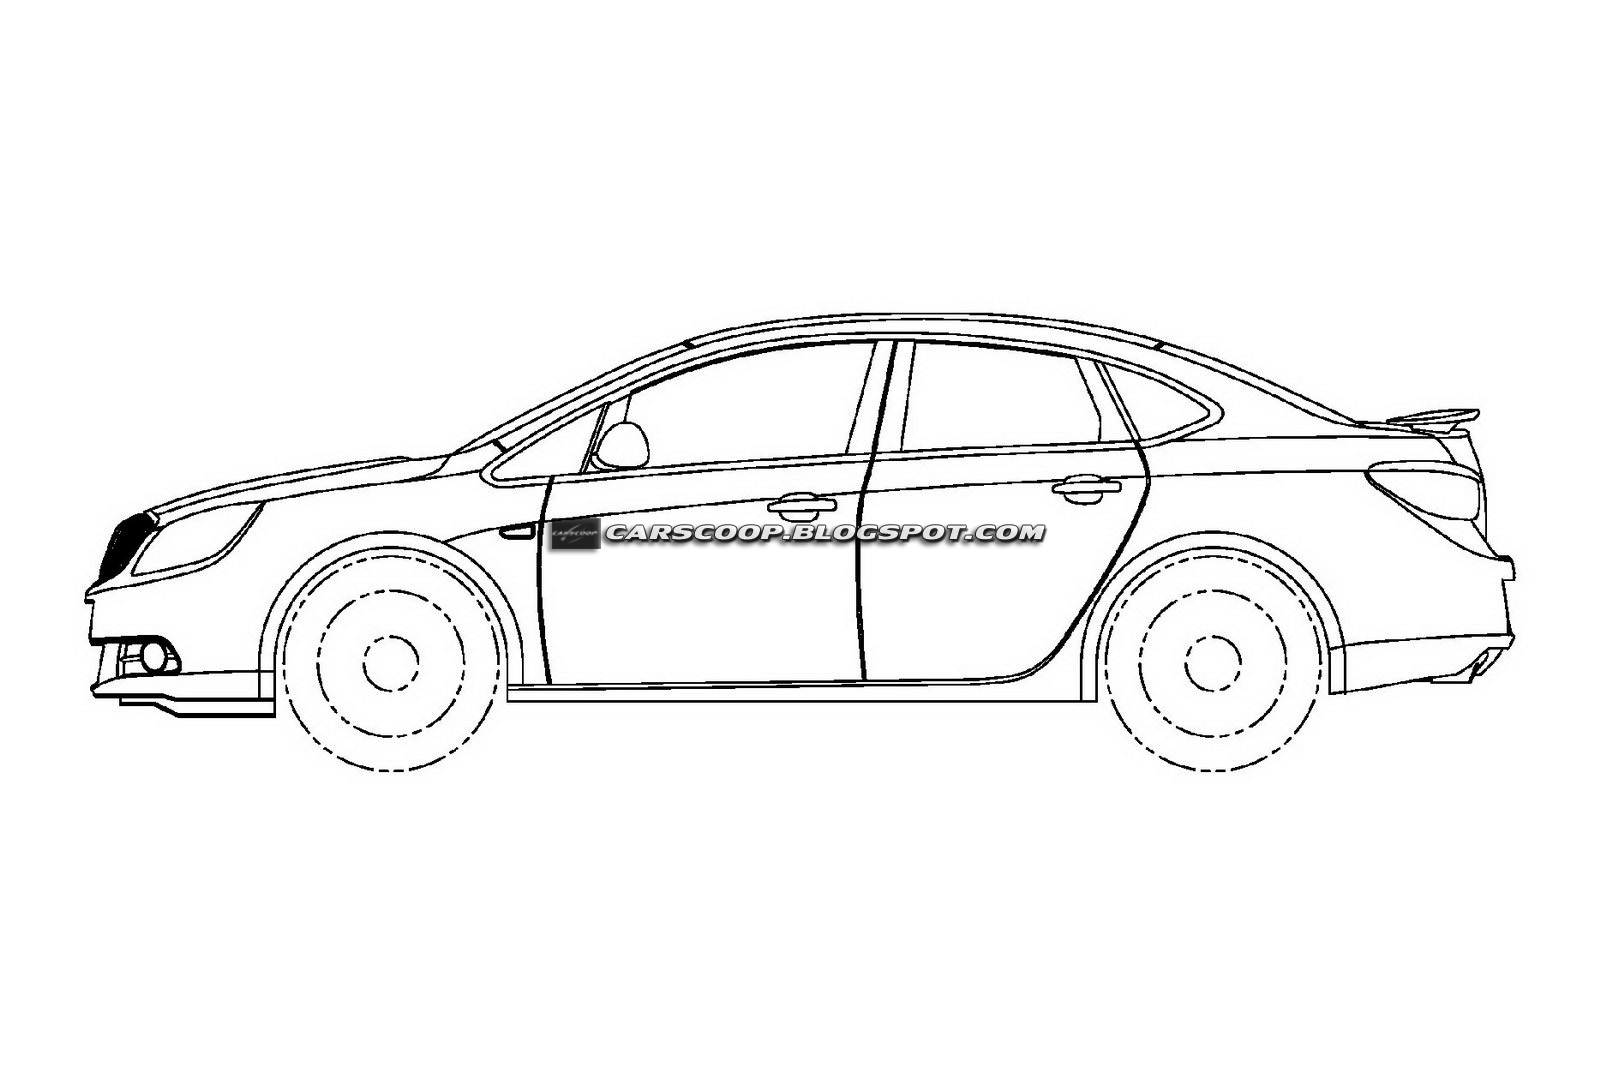 u s  patent drawings of 2012 buick excelle sedan